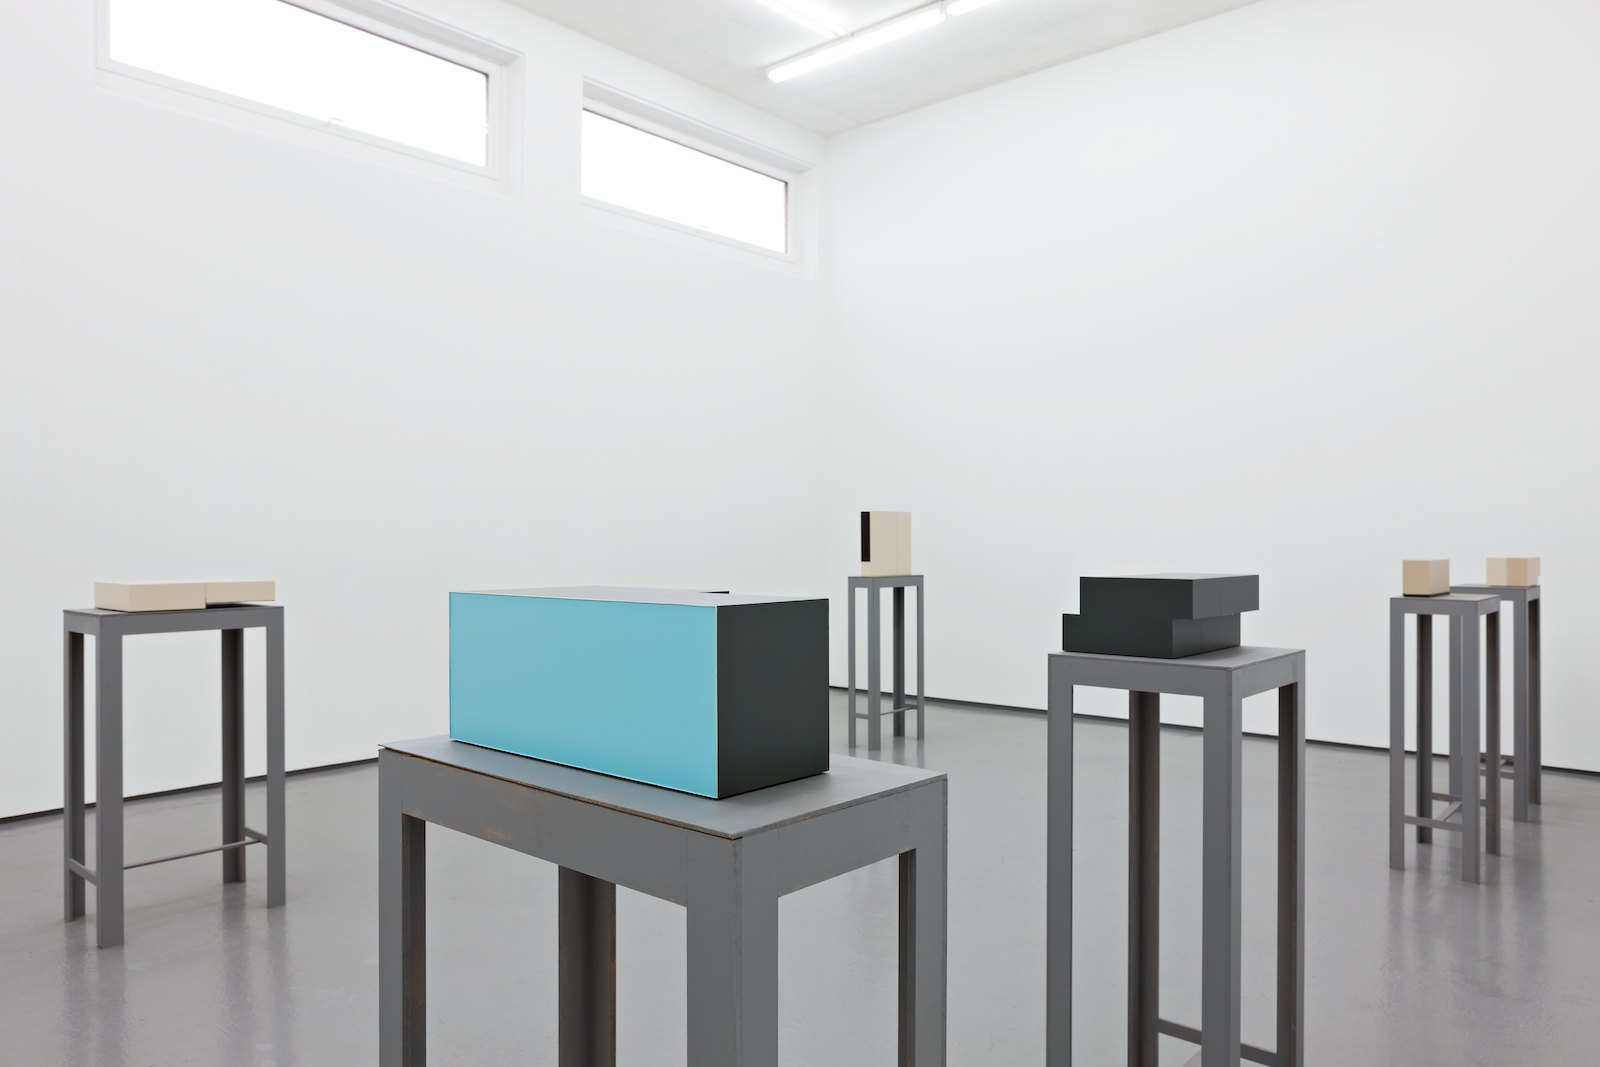 Installation view, Stein Rønning, Esplaceant (Unfinished Business), Galleri Riis, Oslo, 2014